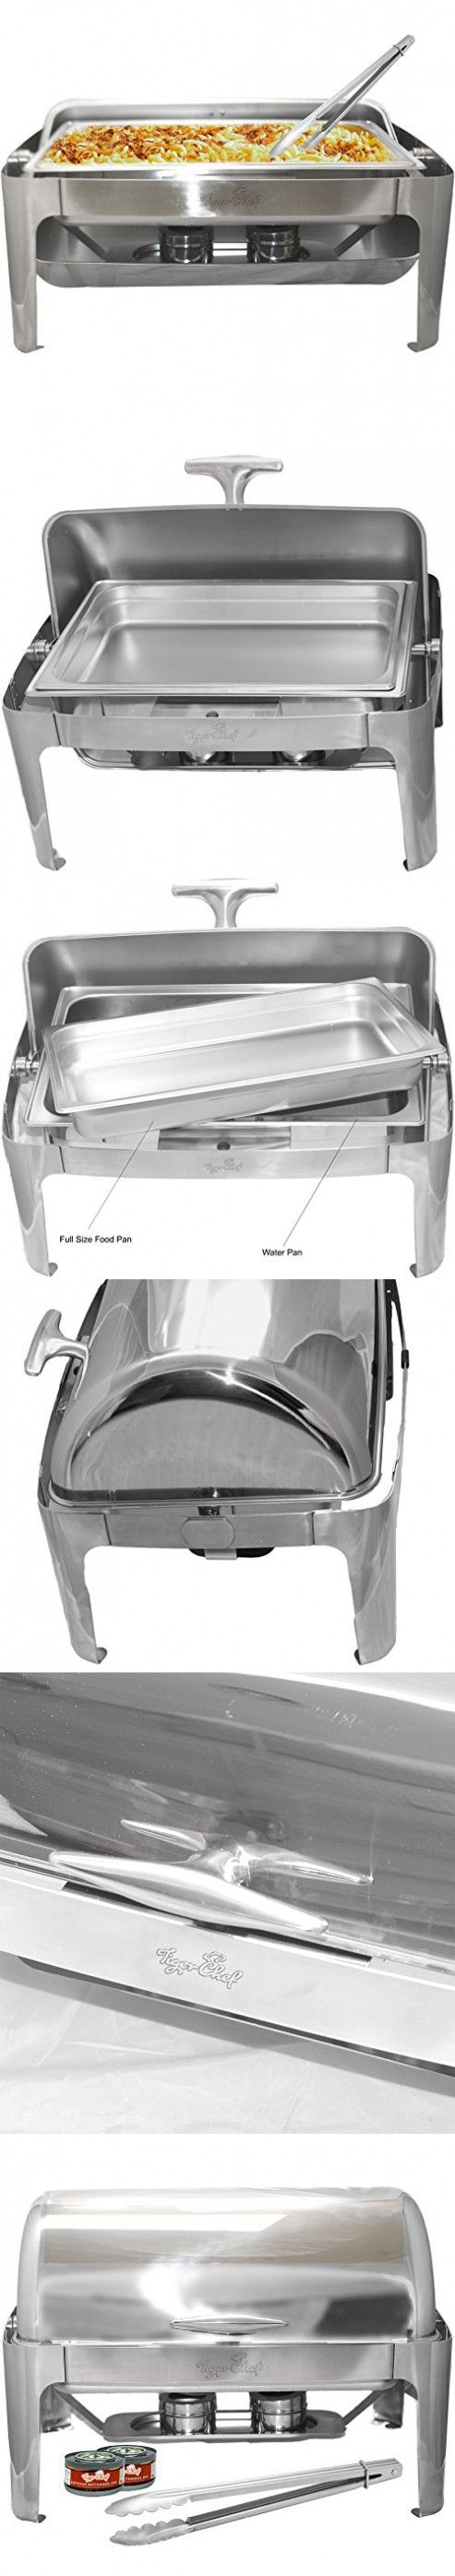 Tiger Chef Stainless Steel Roll Top Chafer, 8 Quart Chafing Dish Set with 2 Chafing Dish Fuel Gels and a 16-Inch Stainless Steel Multi-Function Tong